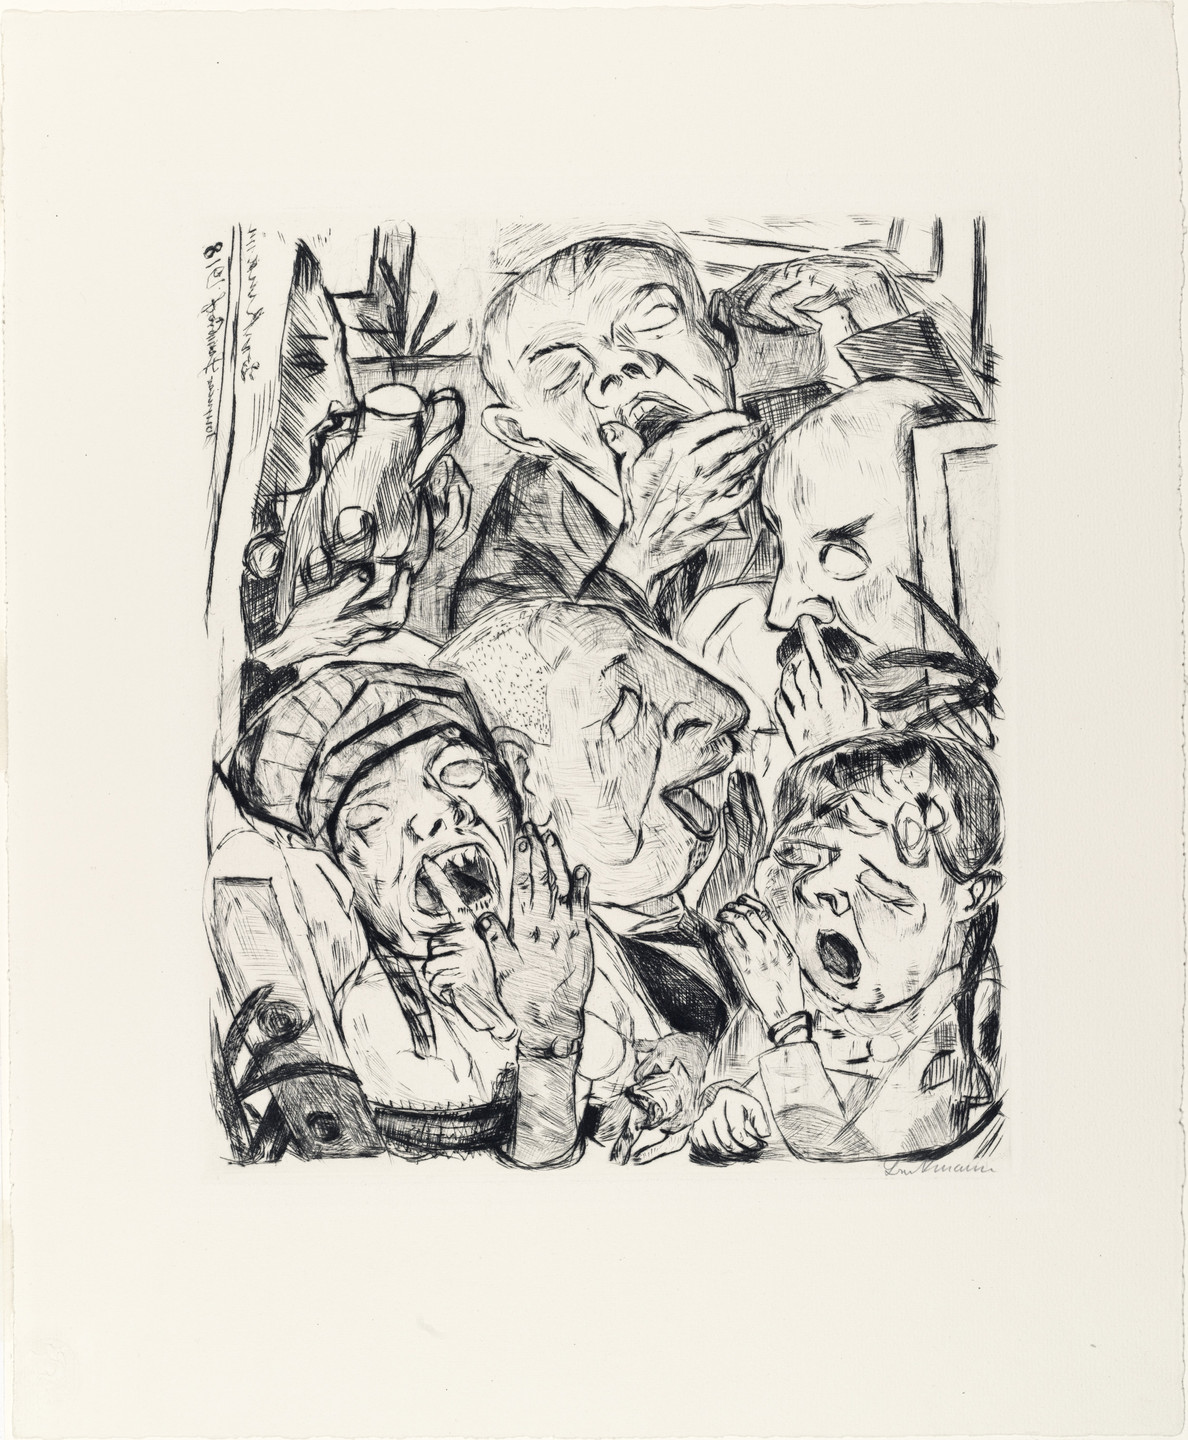 Max Beckmann. The Yawners (Die Gähnenden) from Faces (Gesichter). (1918, published 1919)